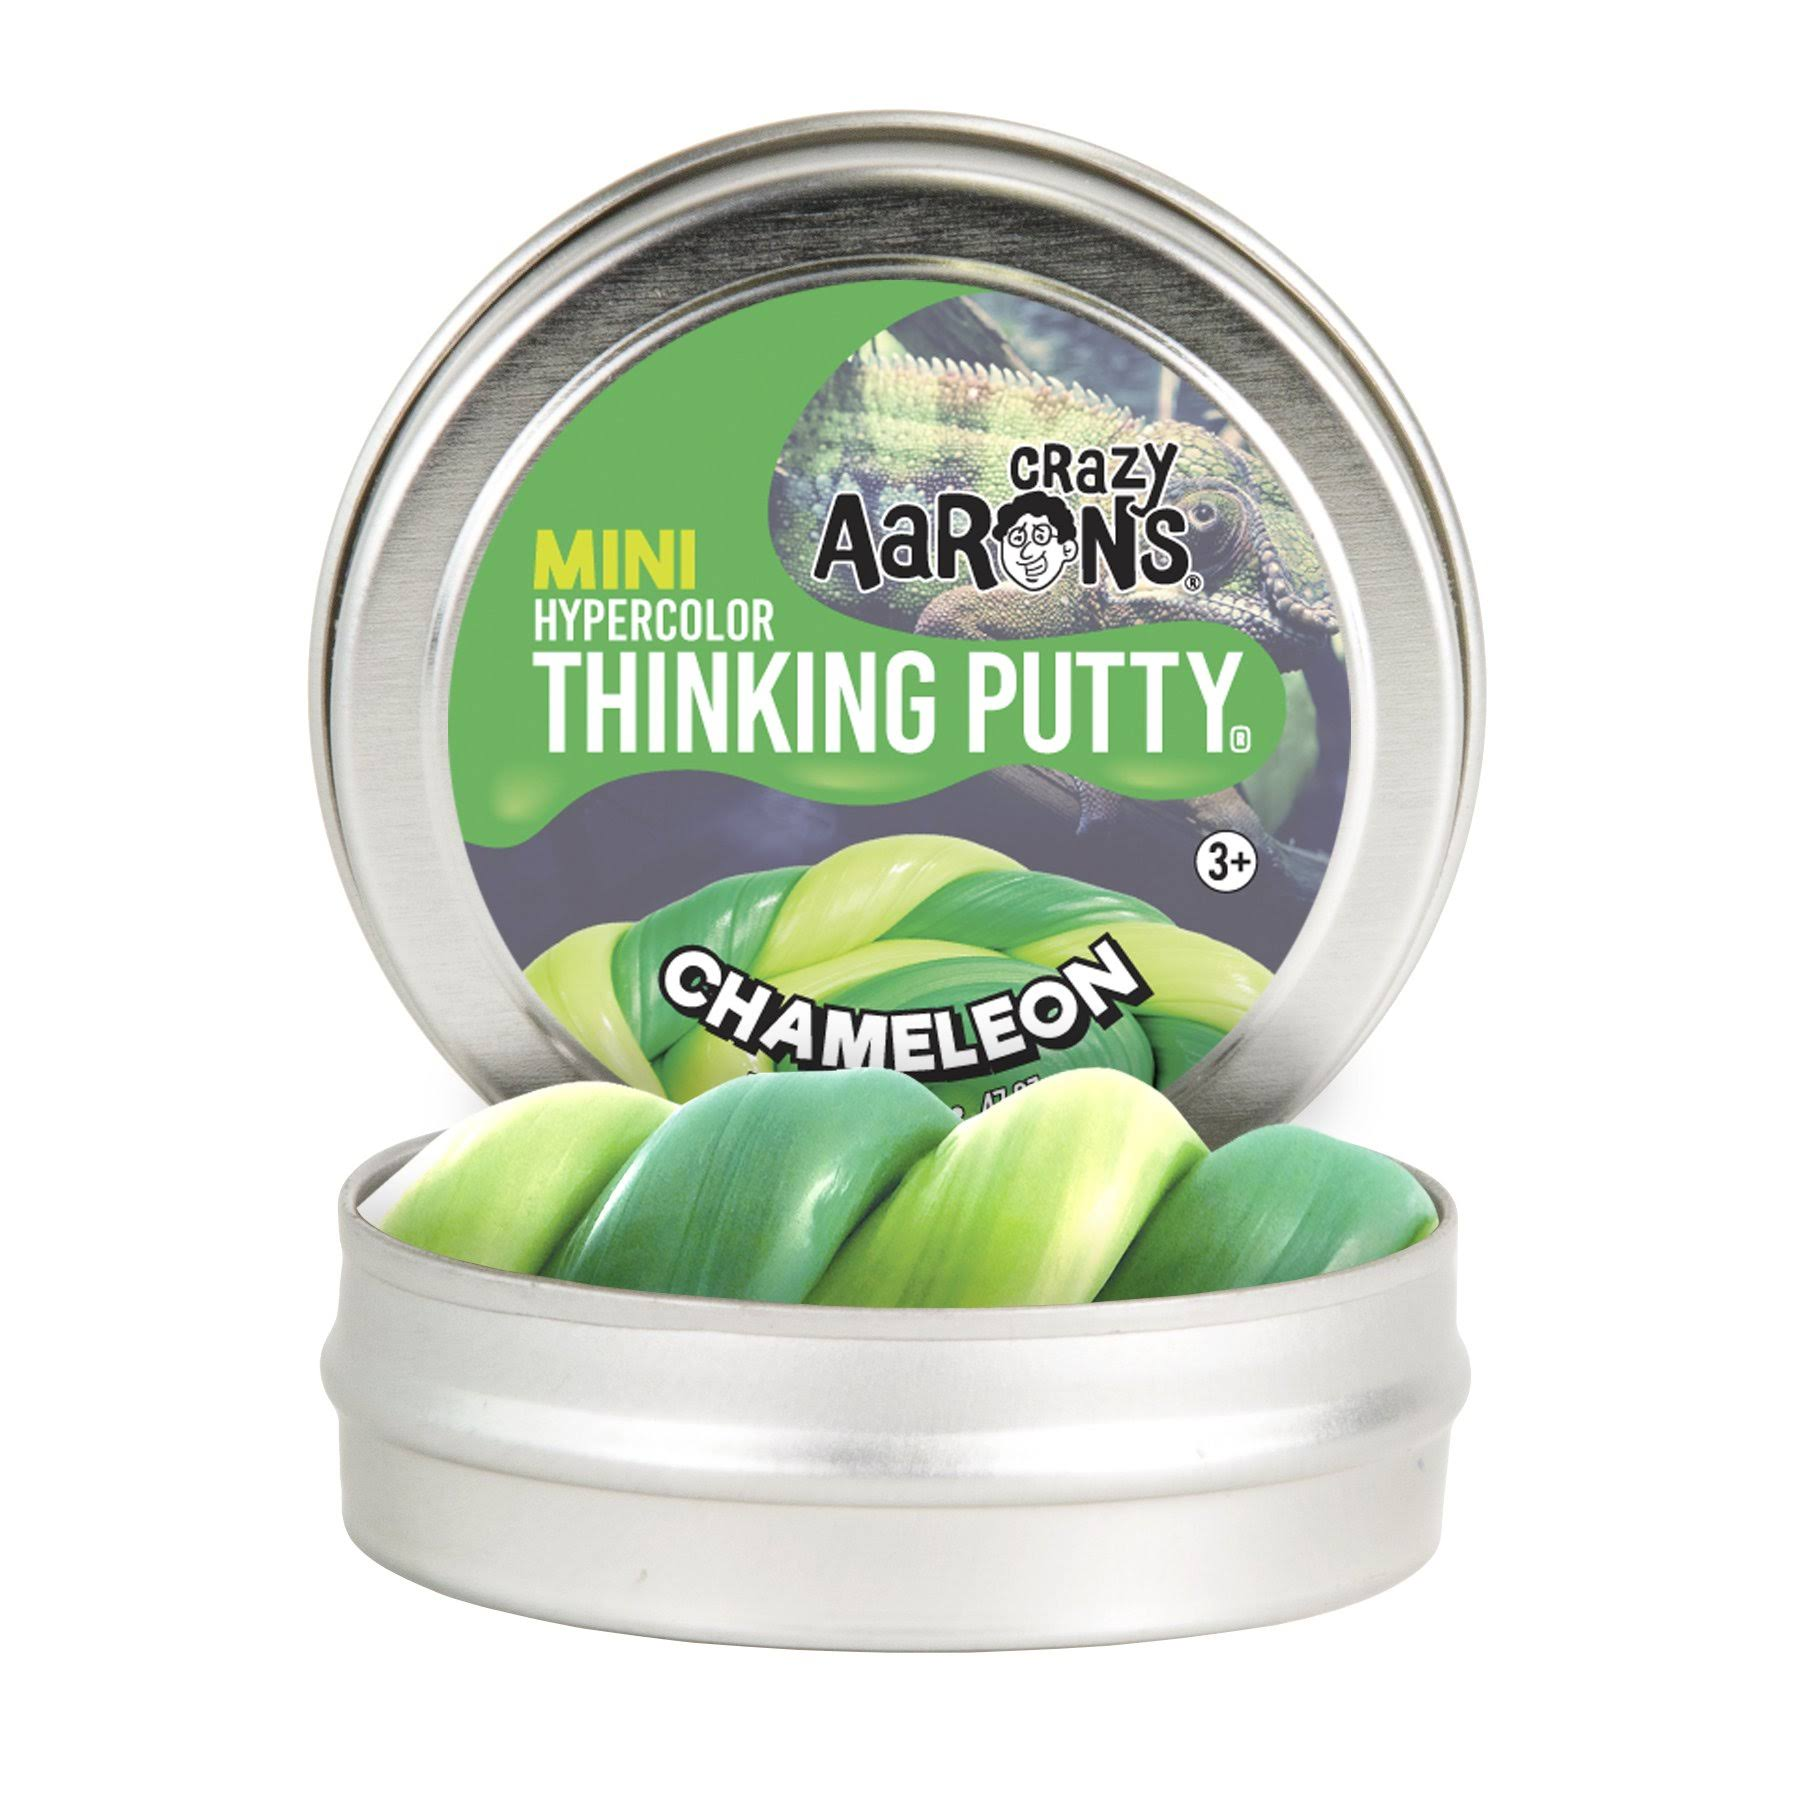 "Chameleon 2"" Tin Crazy Aaron's Thinking Putty"